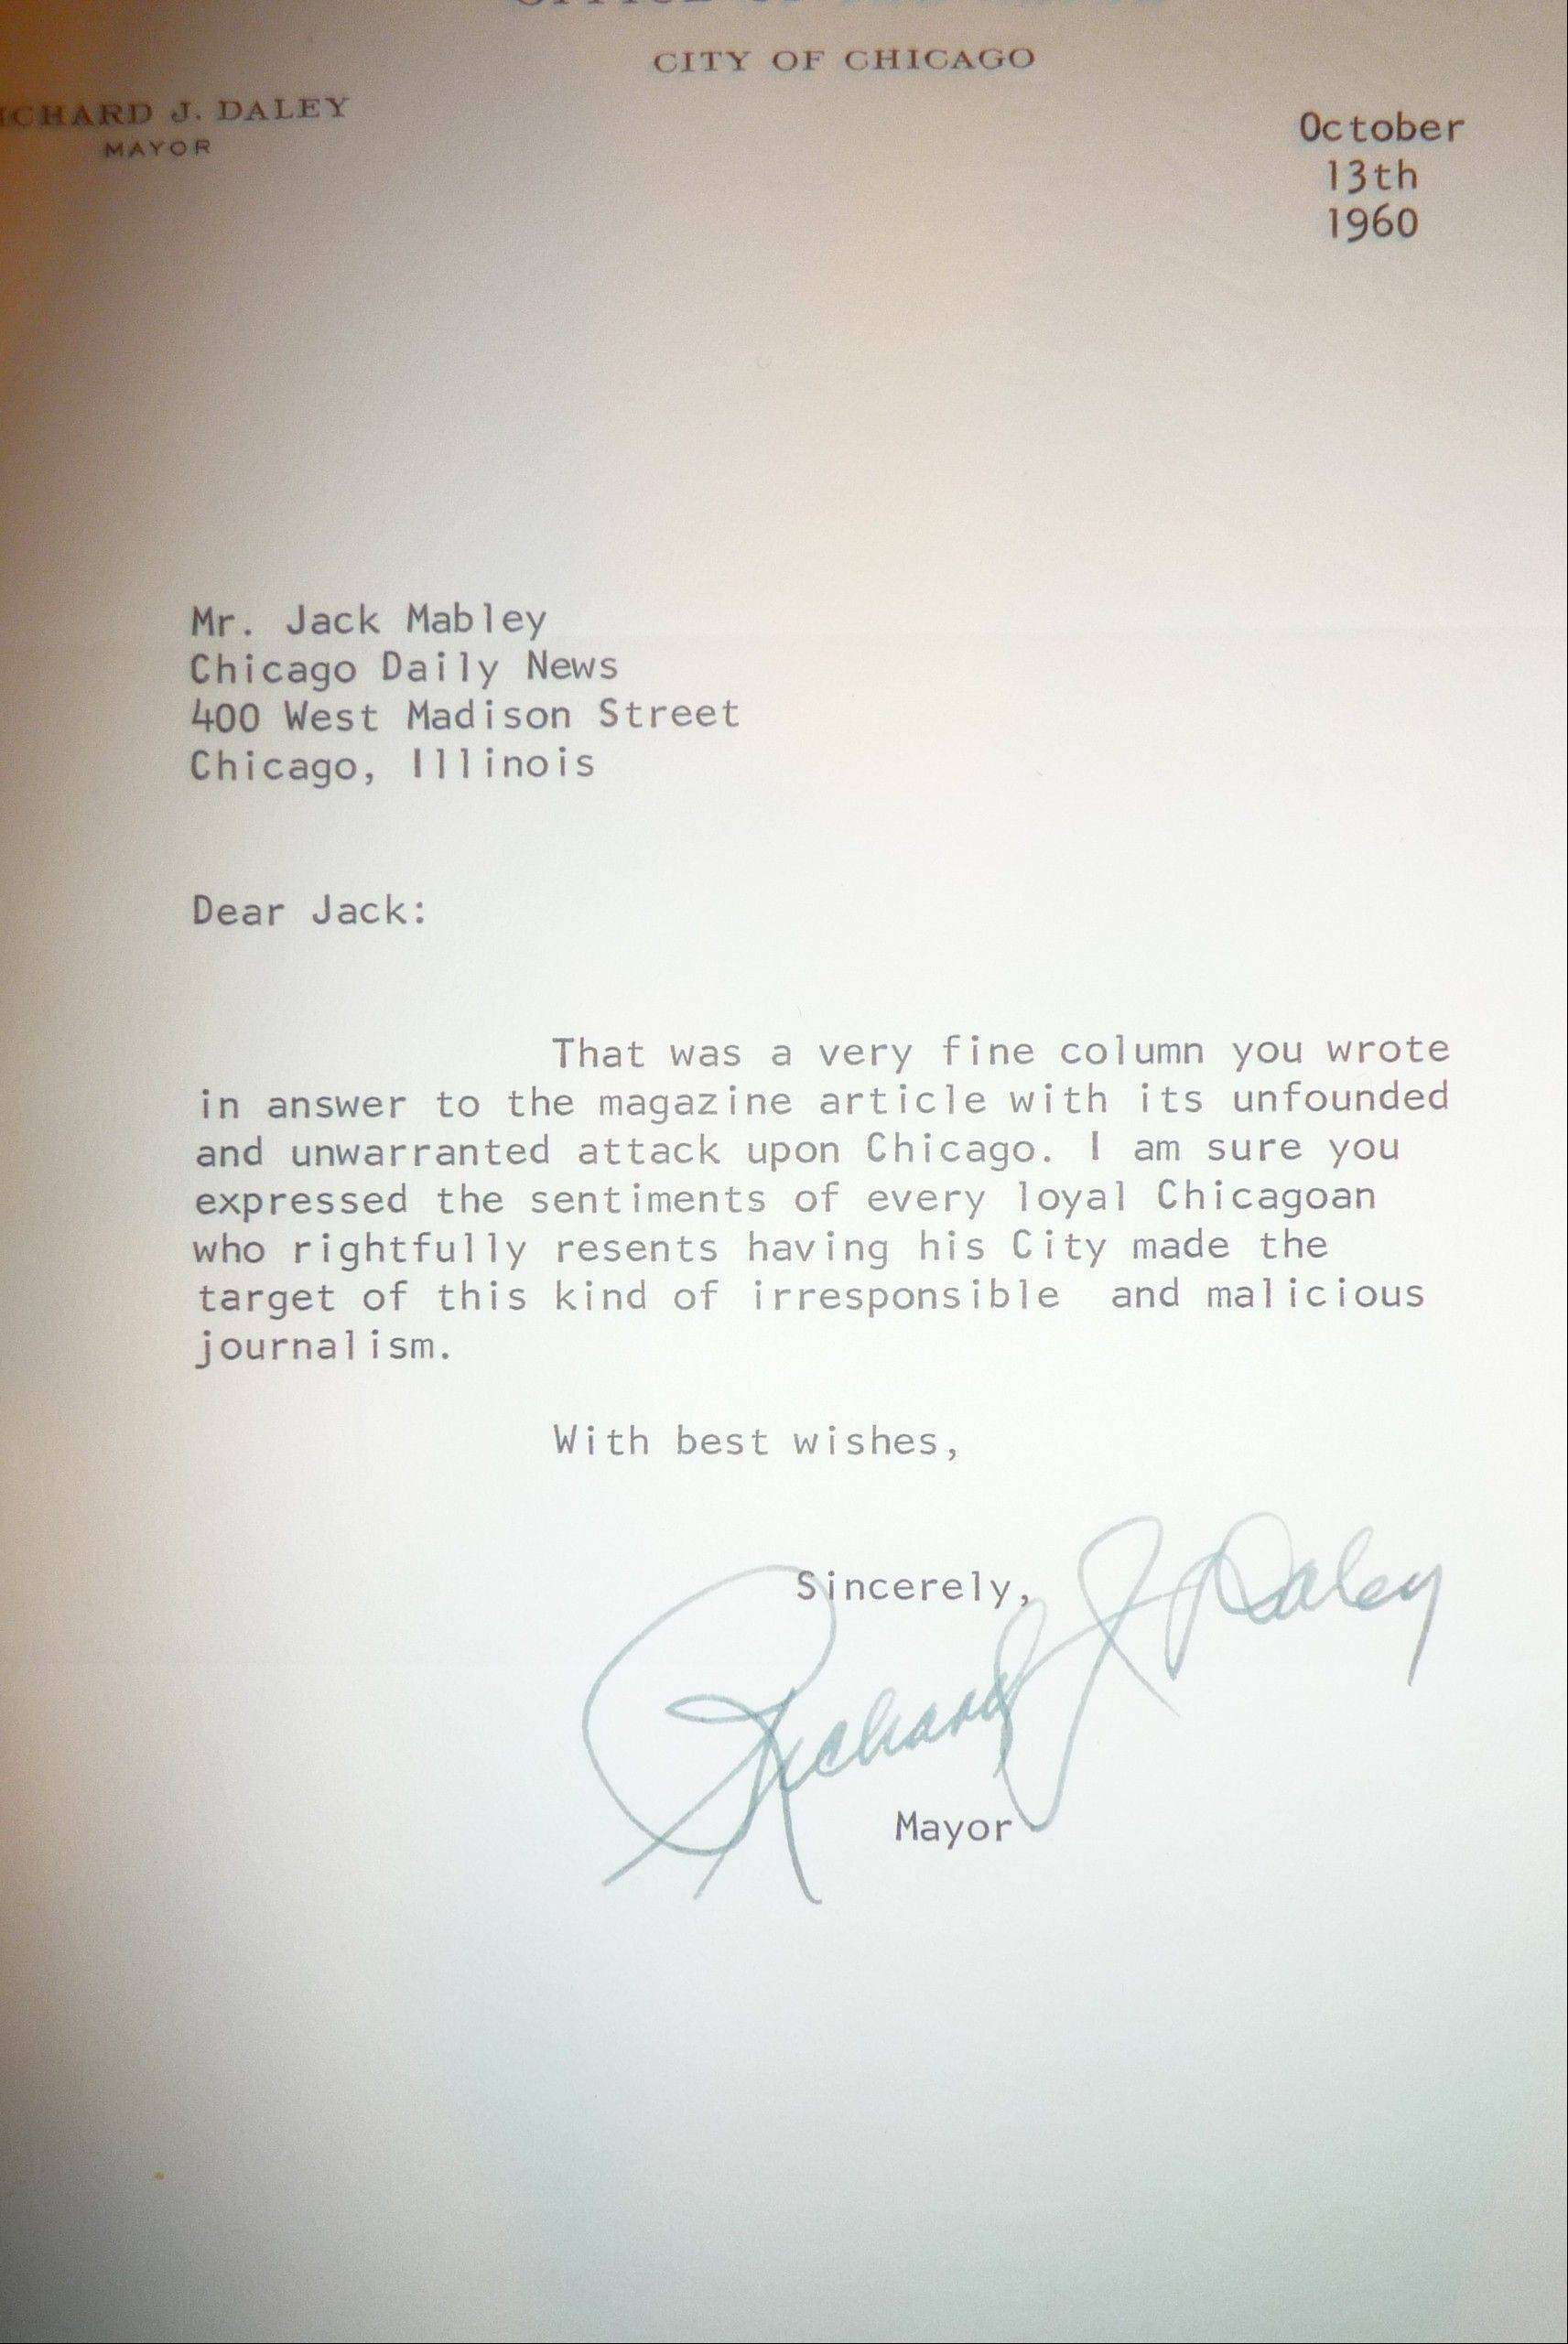 Columnist Jack Mabley received fan letters from a diverse group that including Chicago police, Yippie leader Jerry Rubin and this letter from Chicago's first Mayor Daley.